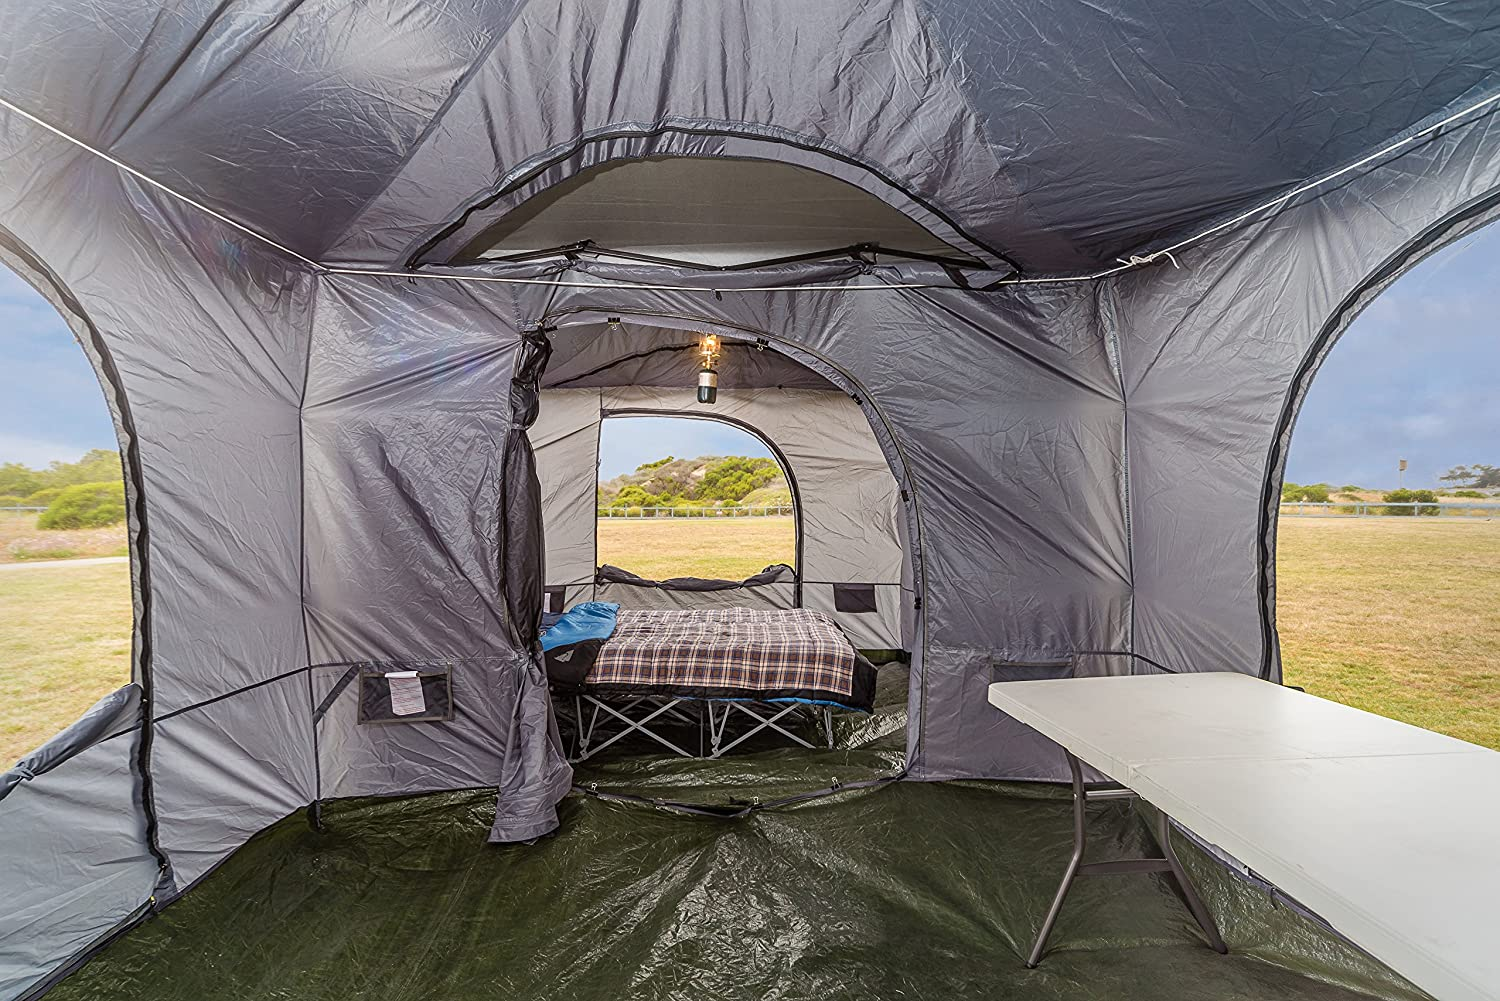 Amazon Standing Room PREMIUM Family Cabin Tent 85 OF HEAD ROOM 4 Big Screen Doors Fast Easy Set Up Full Waterproof Fabric Ceiling NOT CHEAP LEAKY